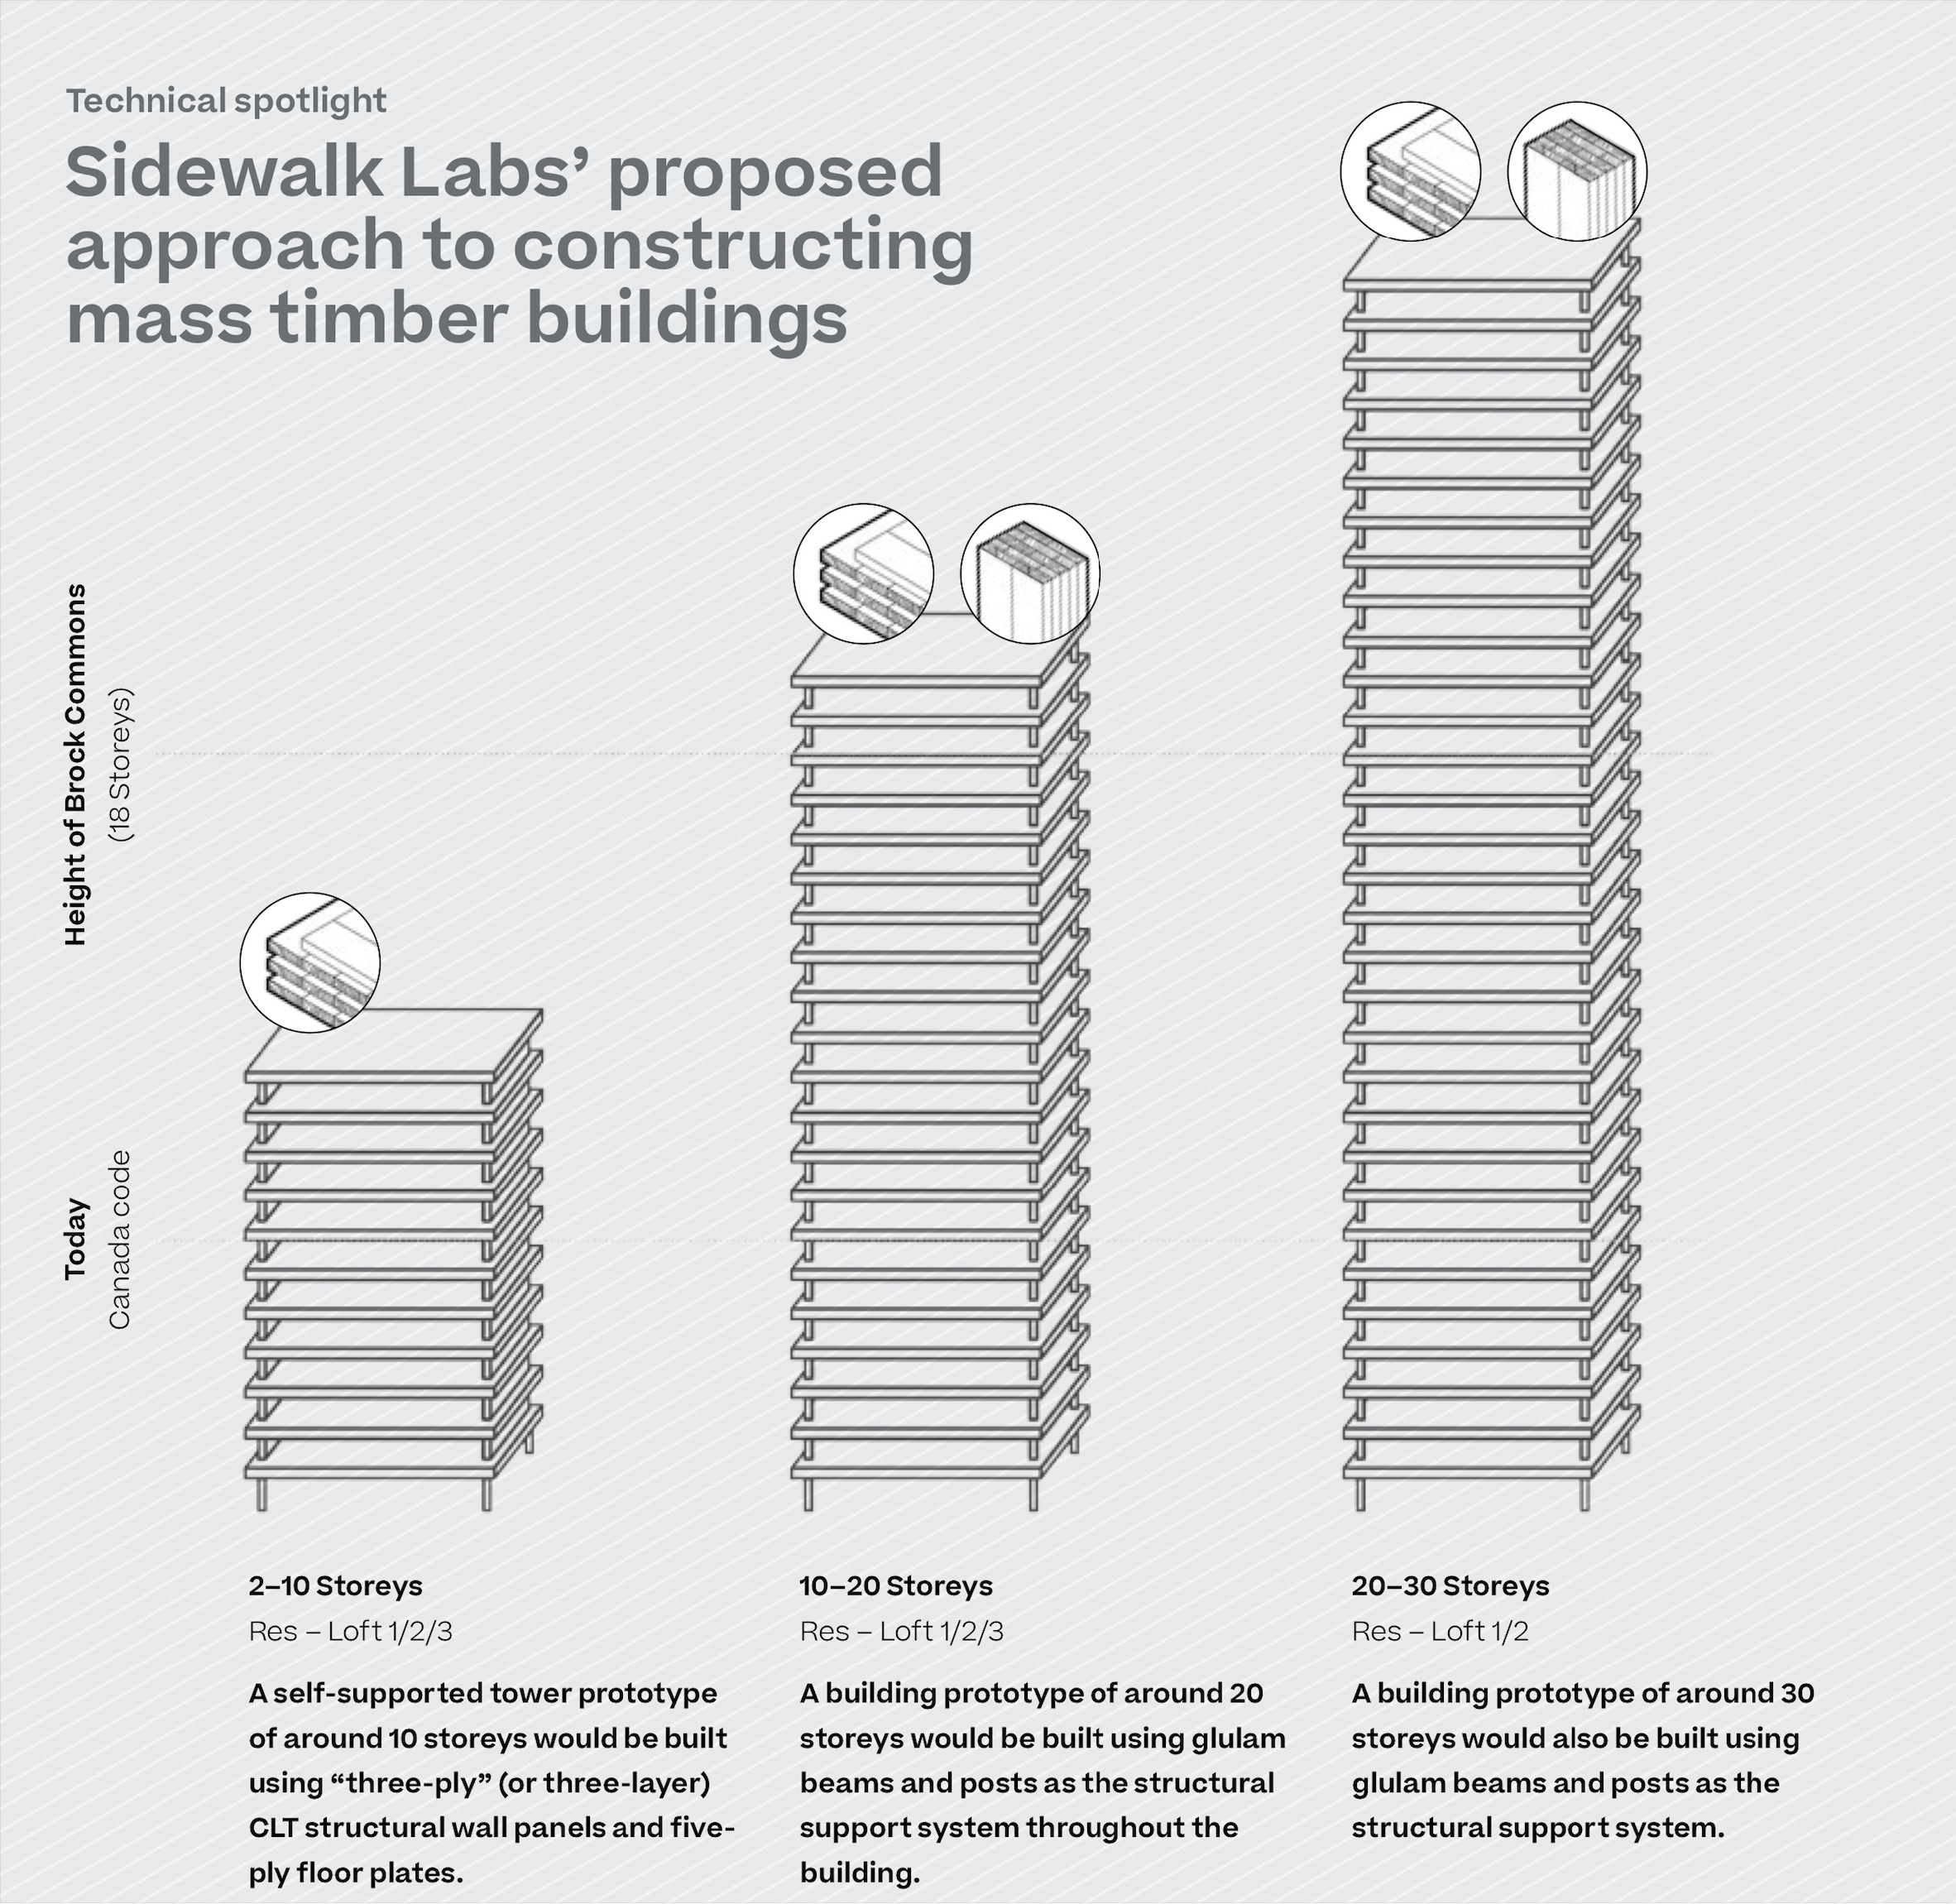 Sidewalk Labs' proposed approach to constructing mass timber buildings